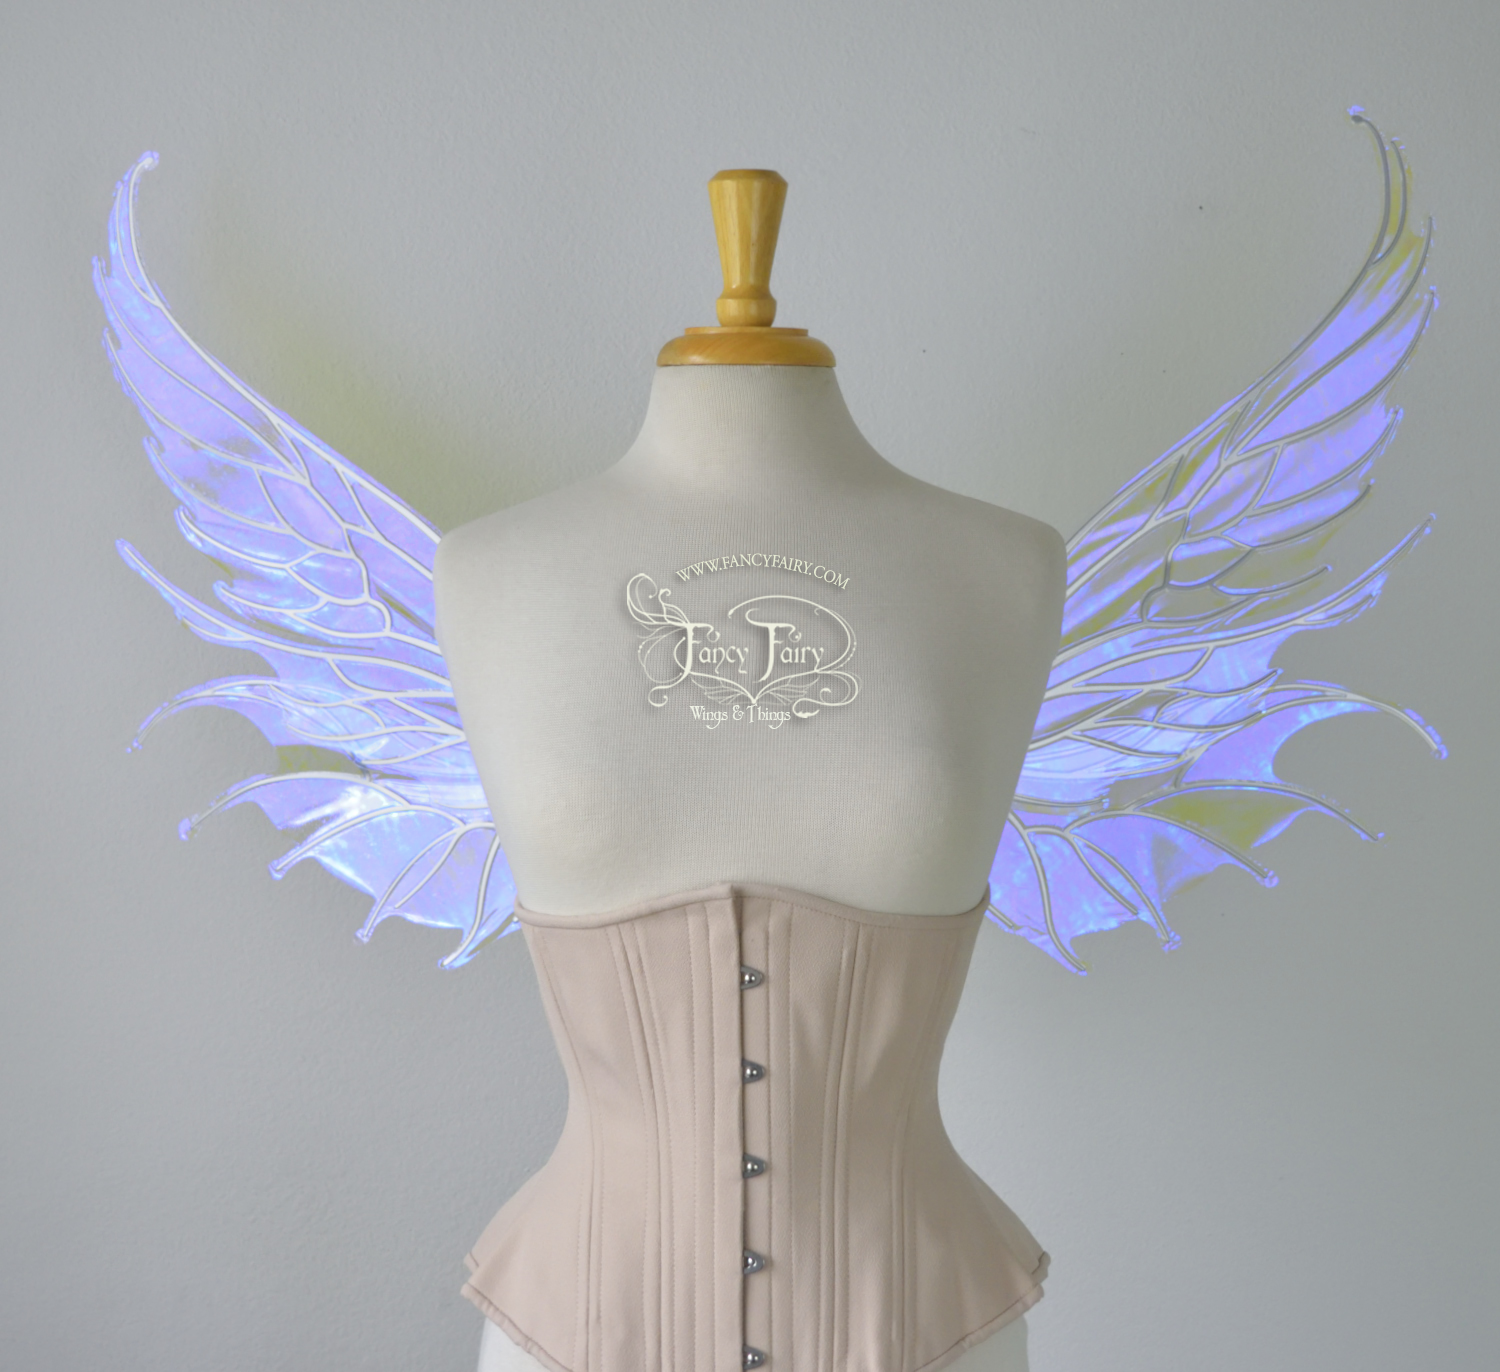 Aquatica convertible Fairy Wings in Ultraviolet with Pearl veins